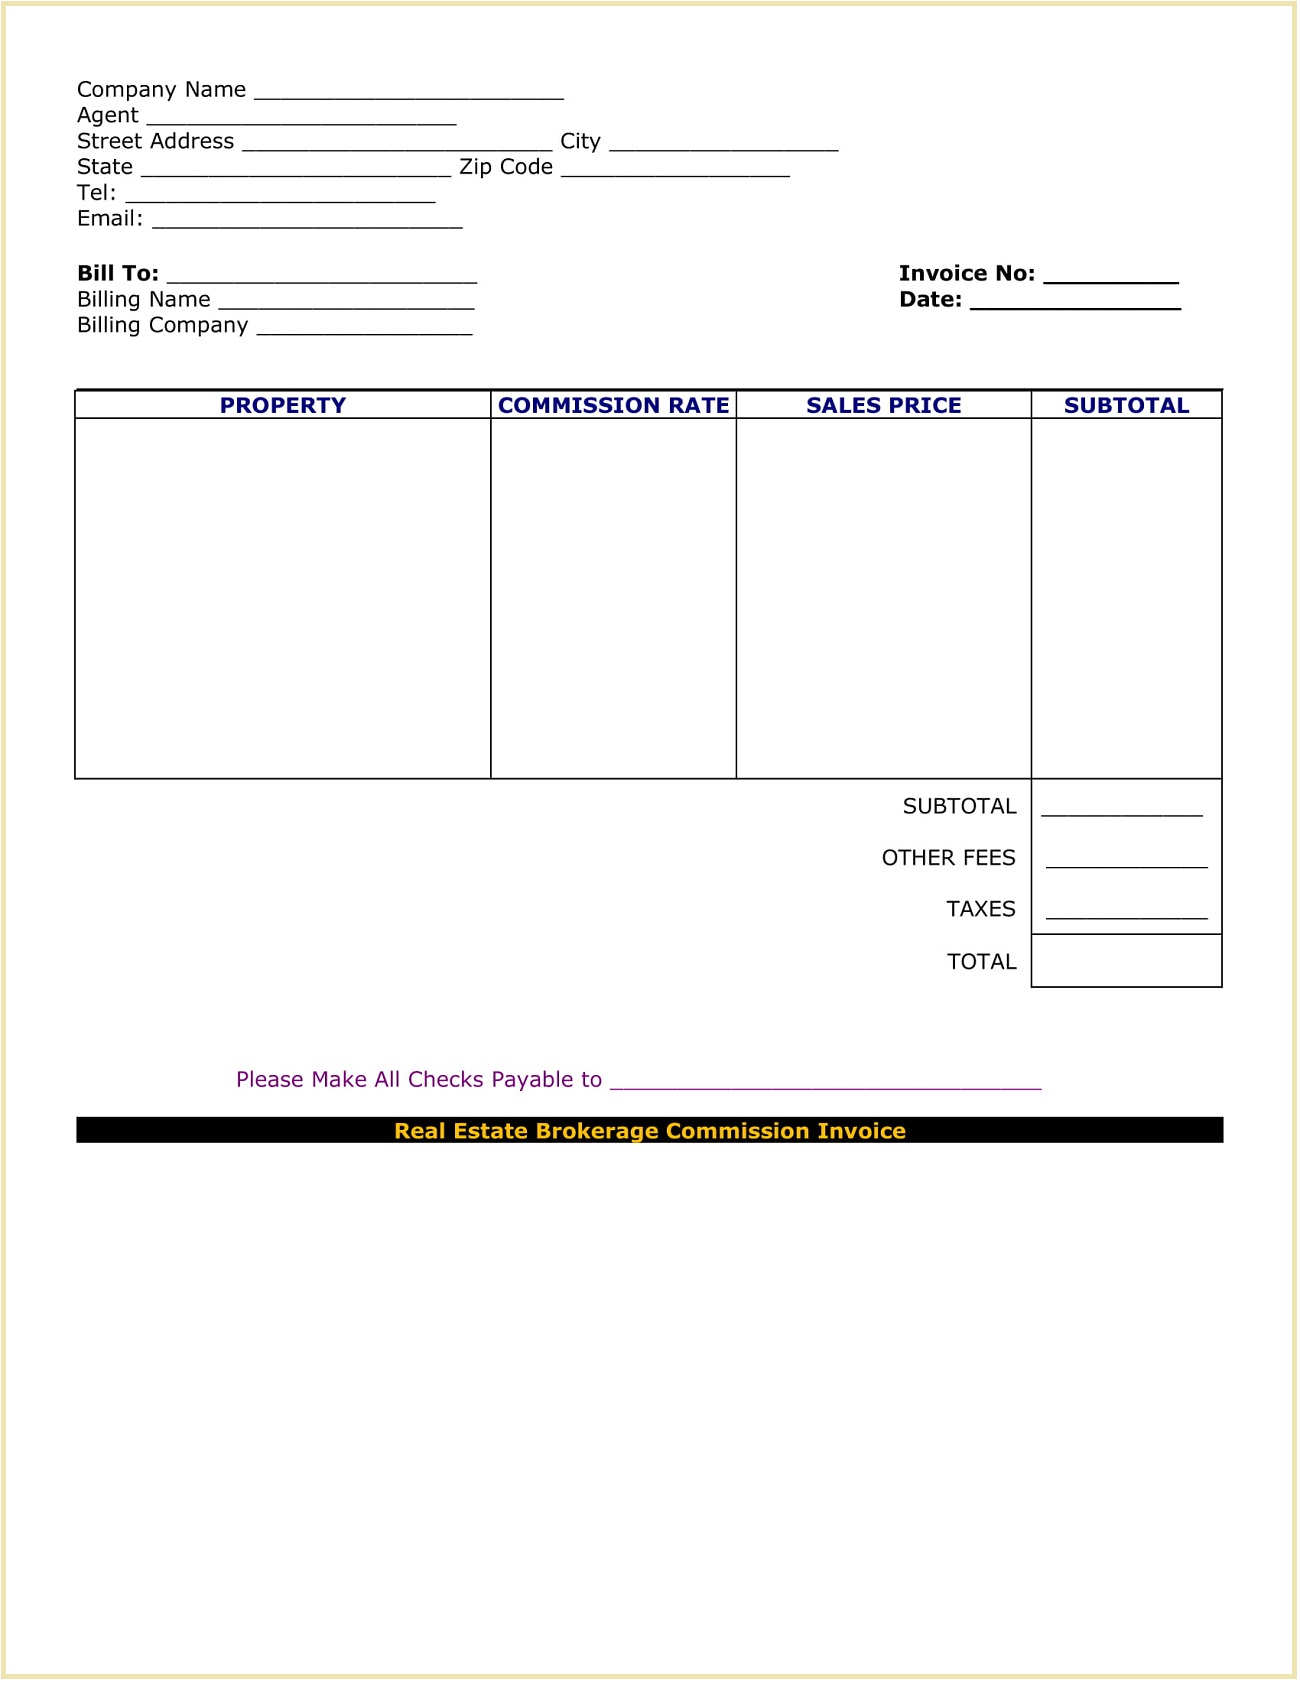 Real Estate Commission Invoice Form Word Docx Template